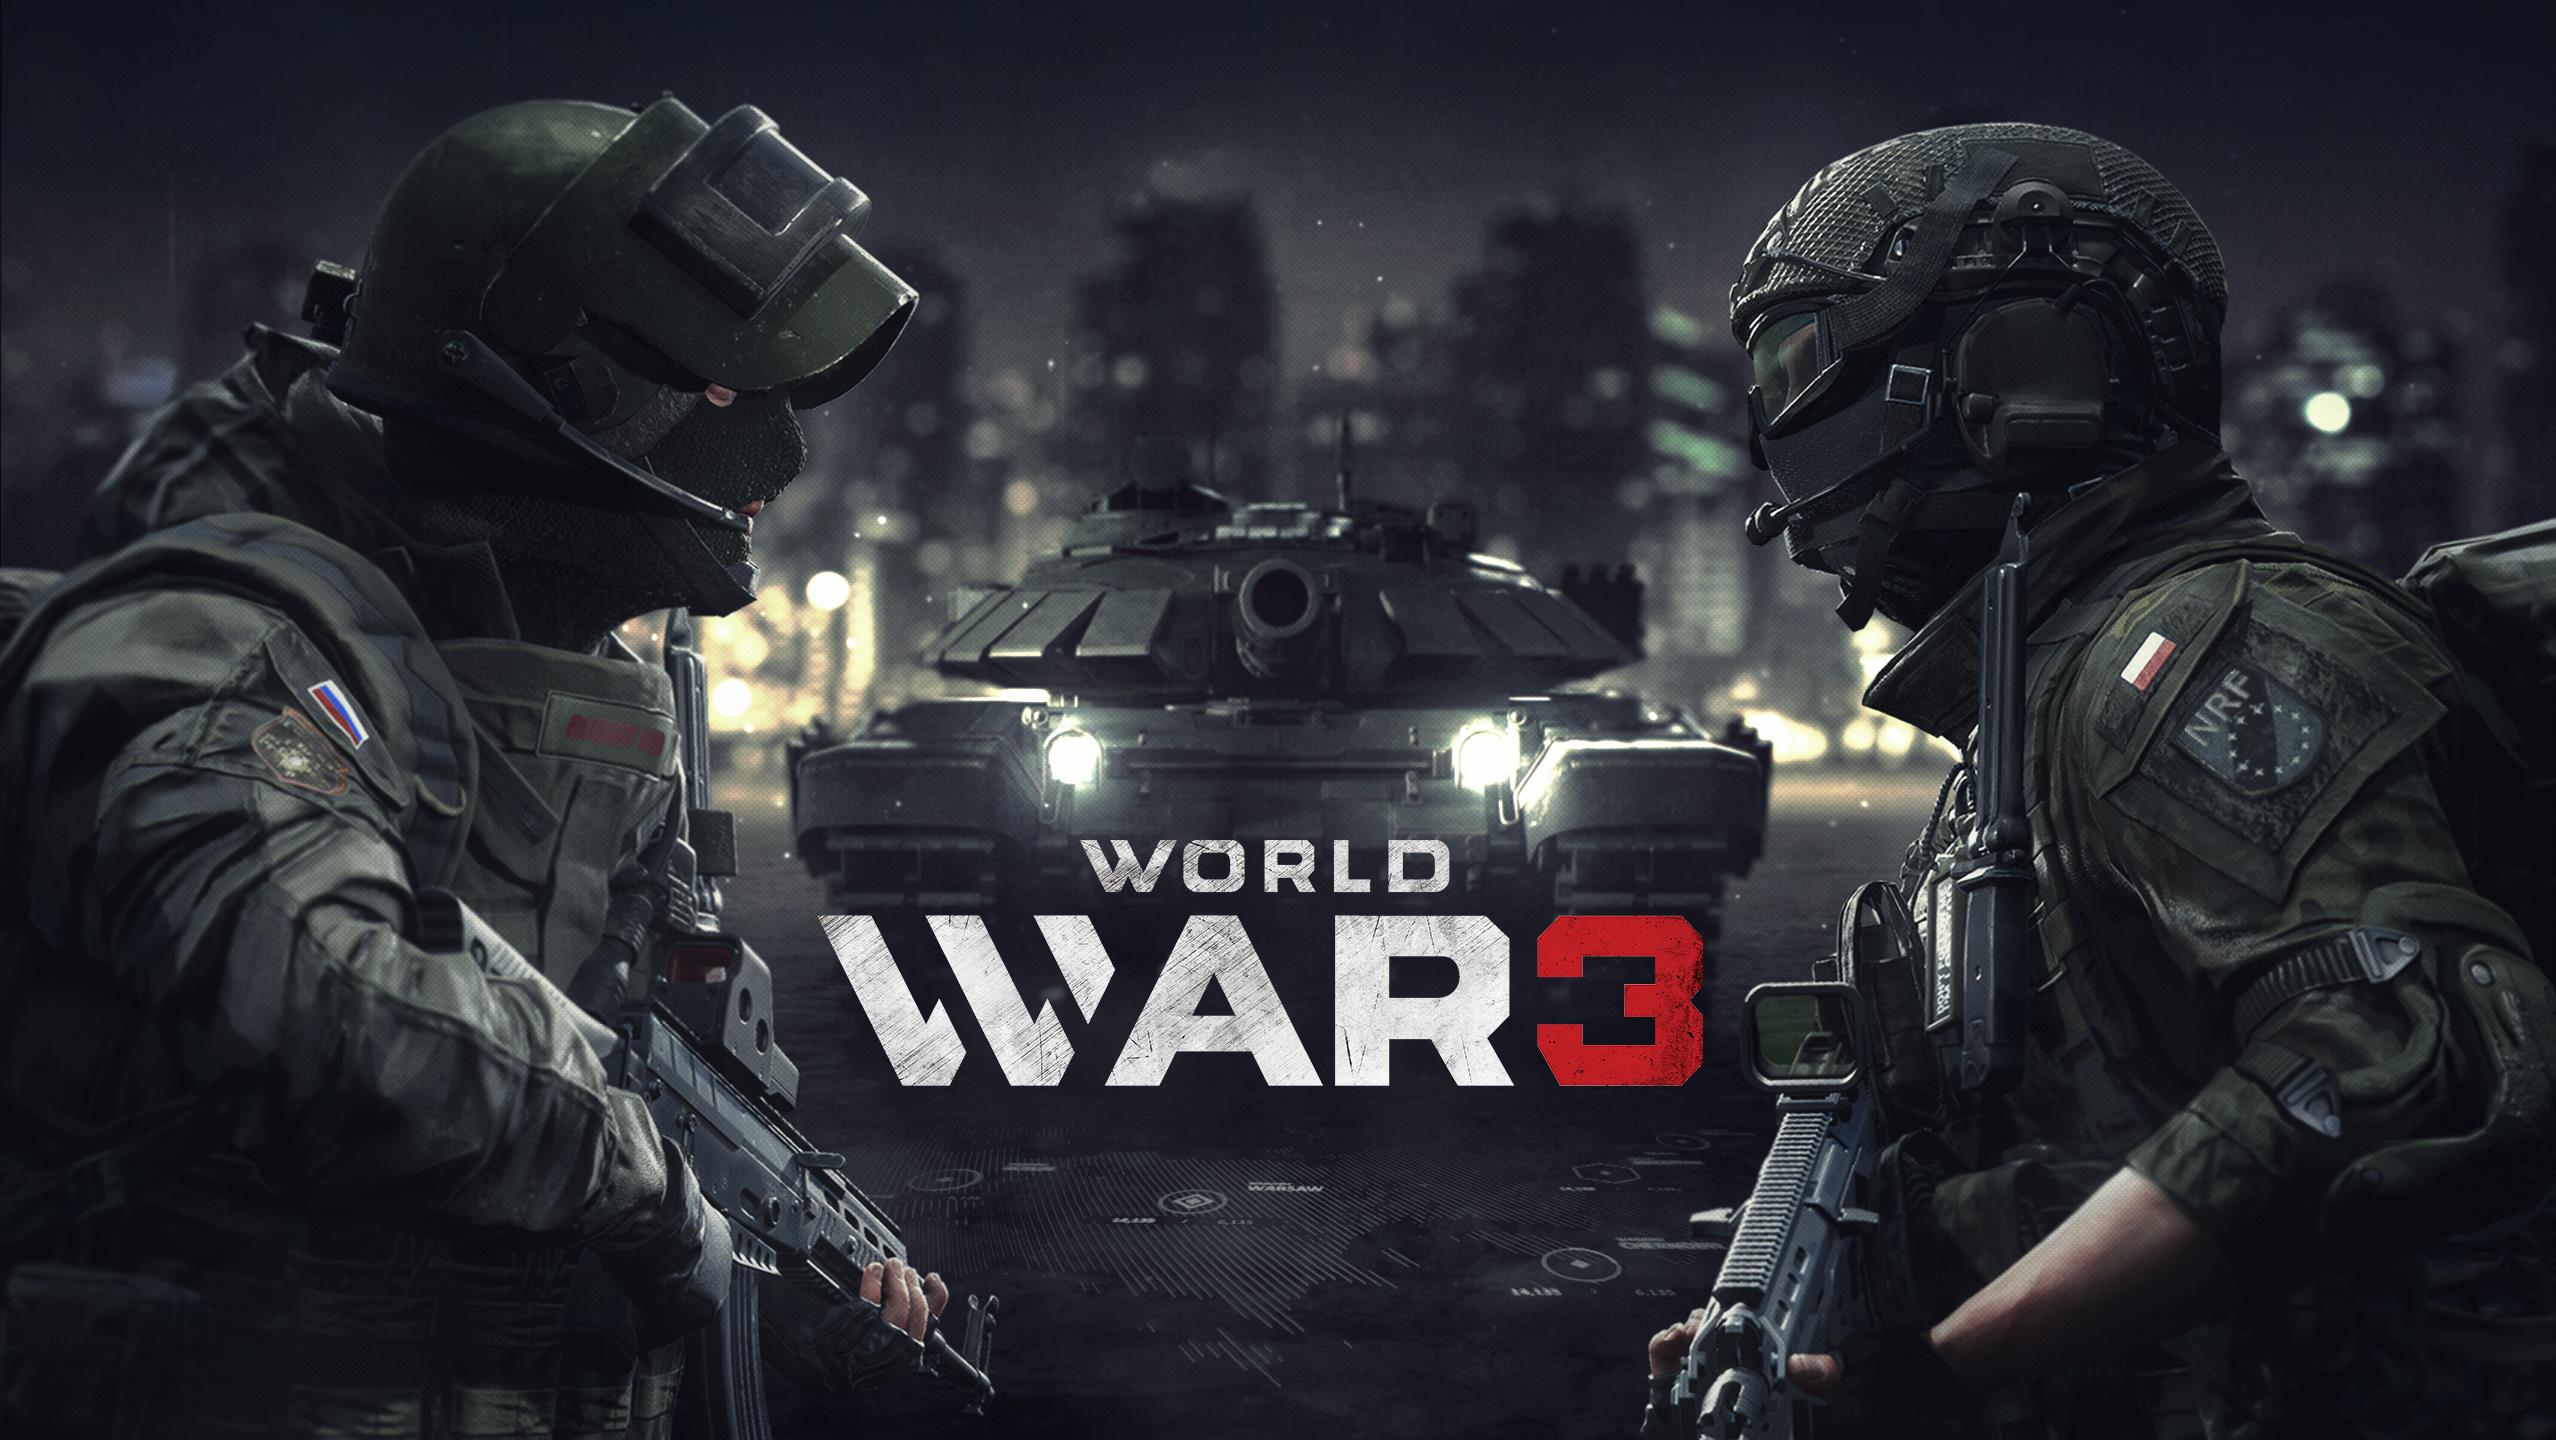 World war 3 is a battlefield style modern day shooter coming to world war 3 is a battlefield style modern day shooter coming to steam this year vg247 gumiabroncs Choice Image